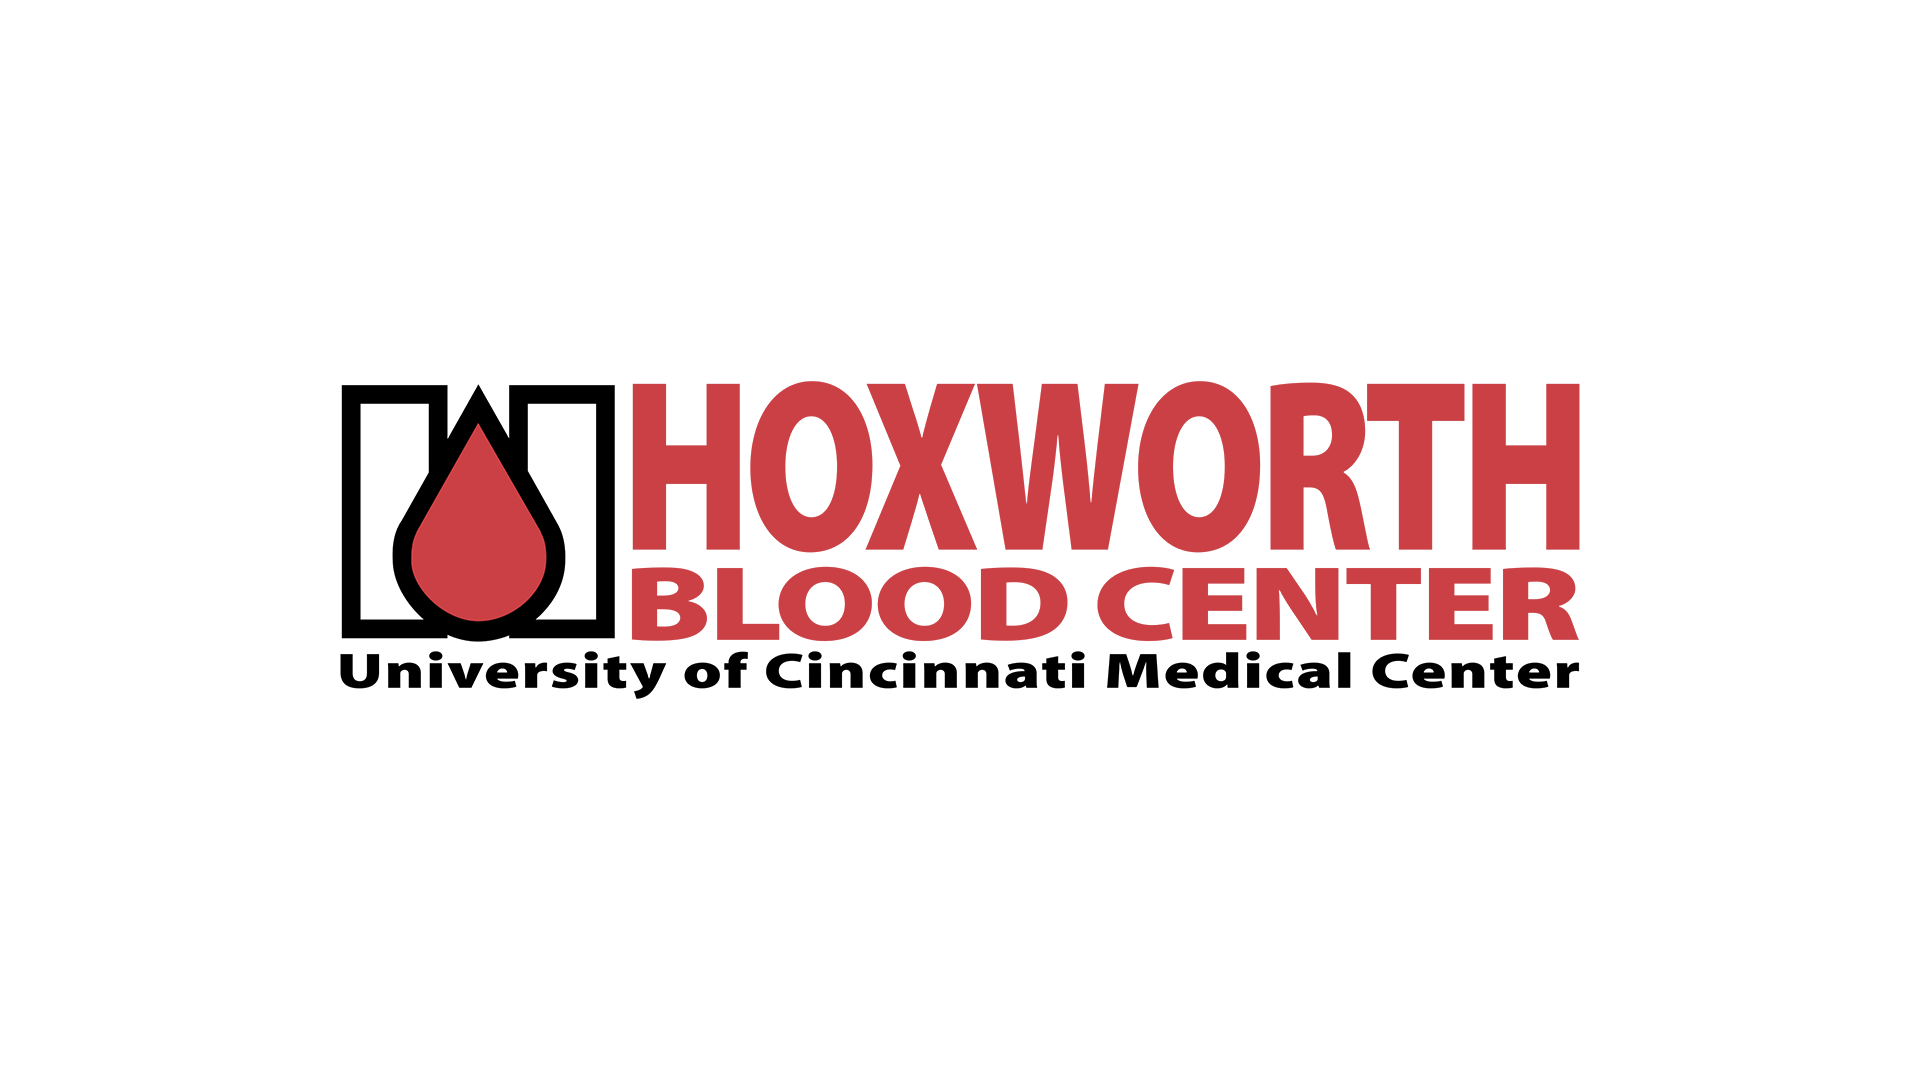 Hoxworth Blood Center and PERFEQTA